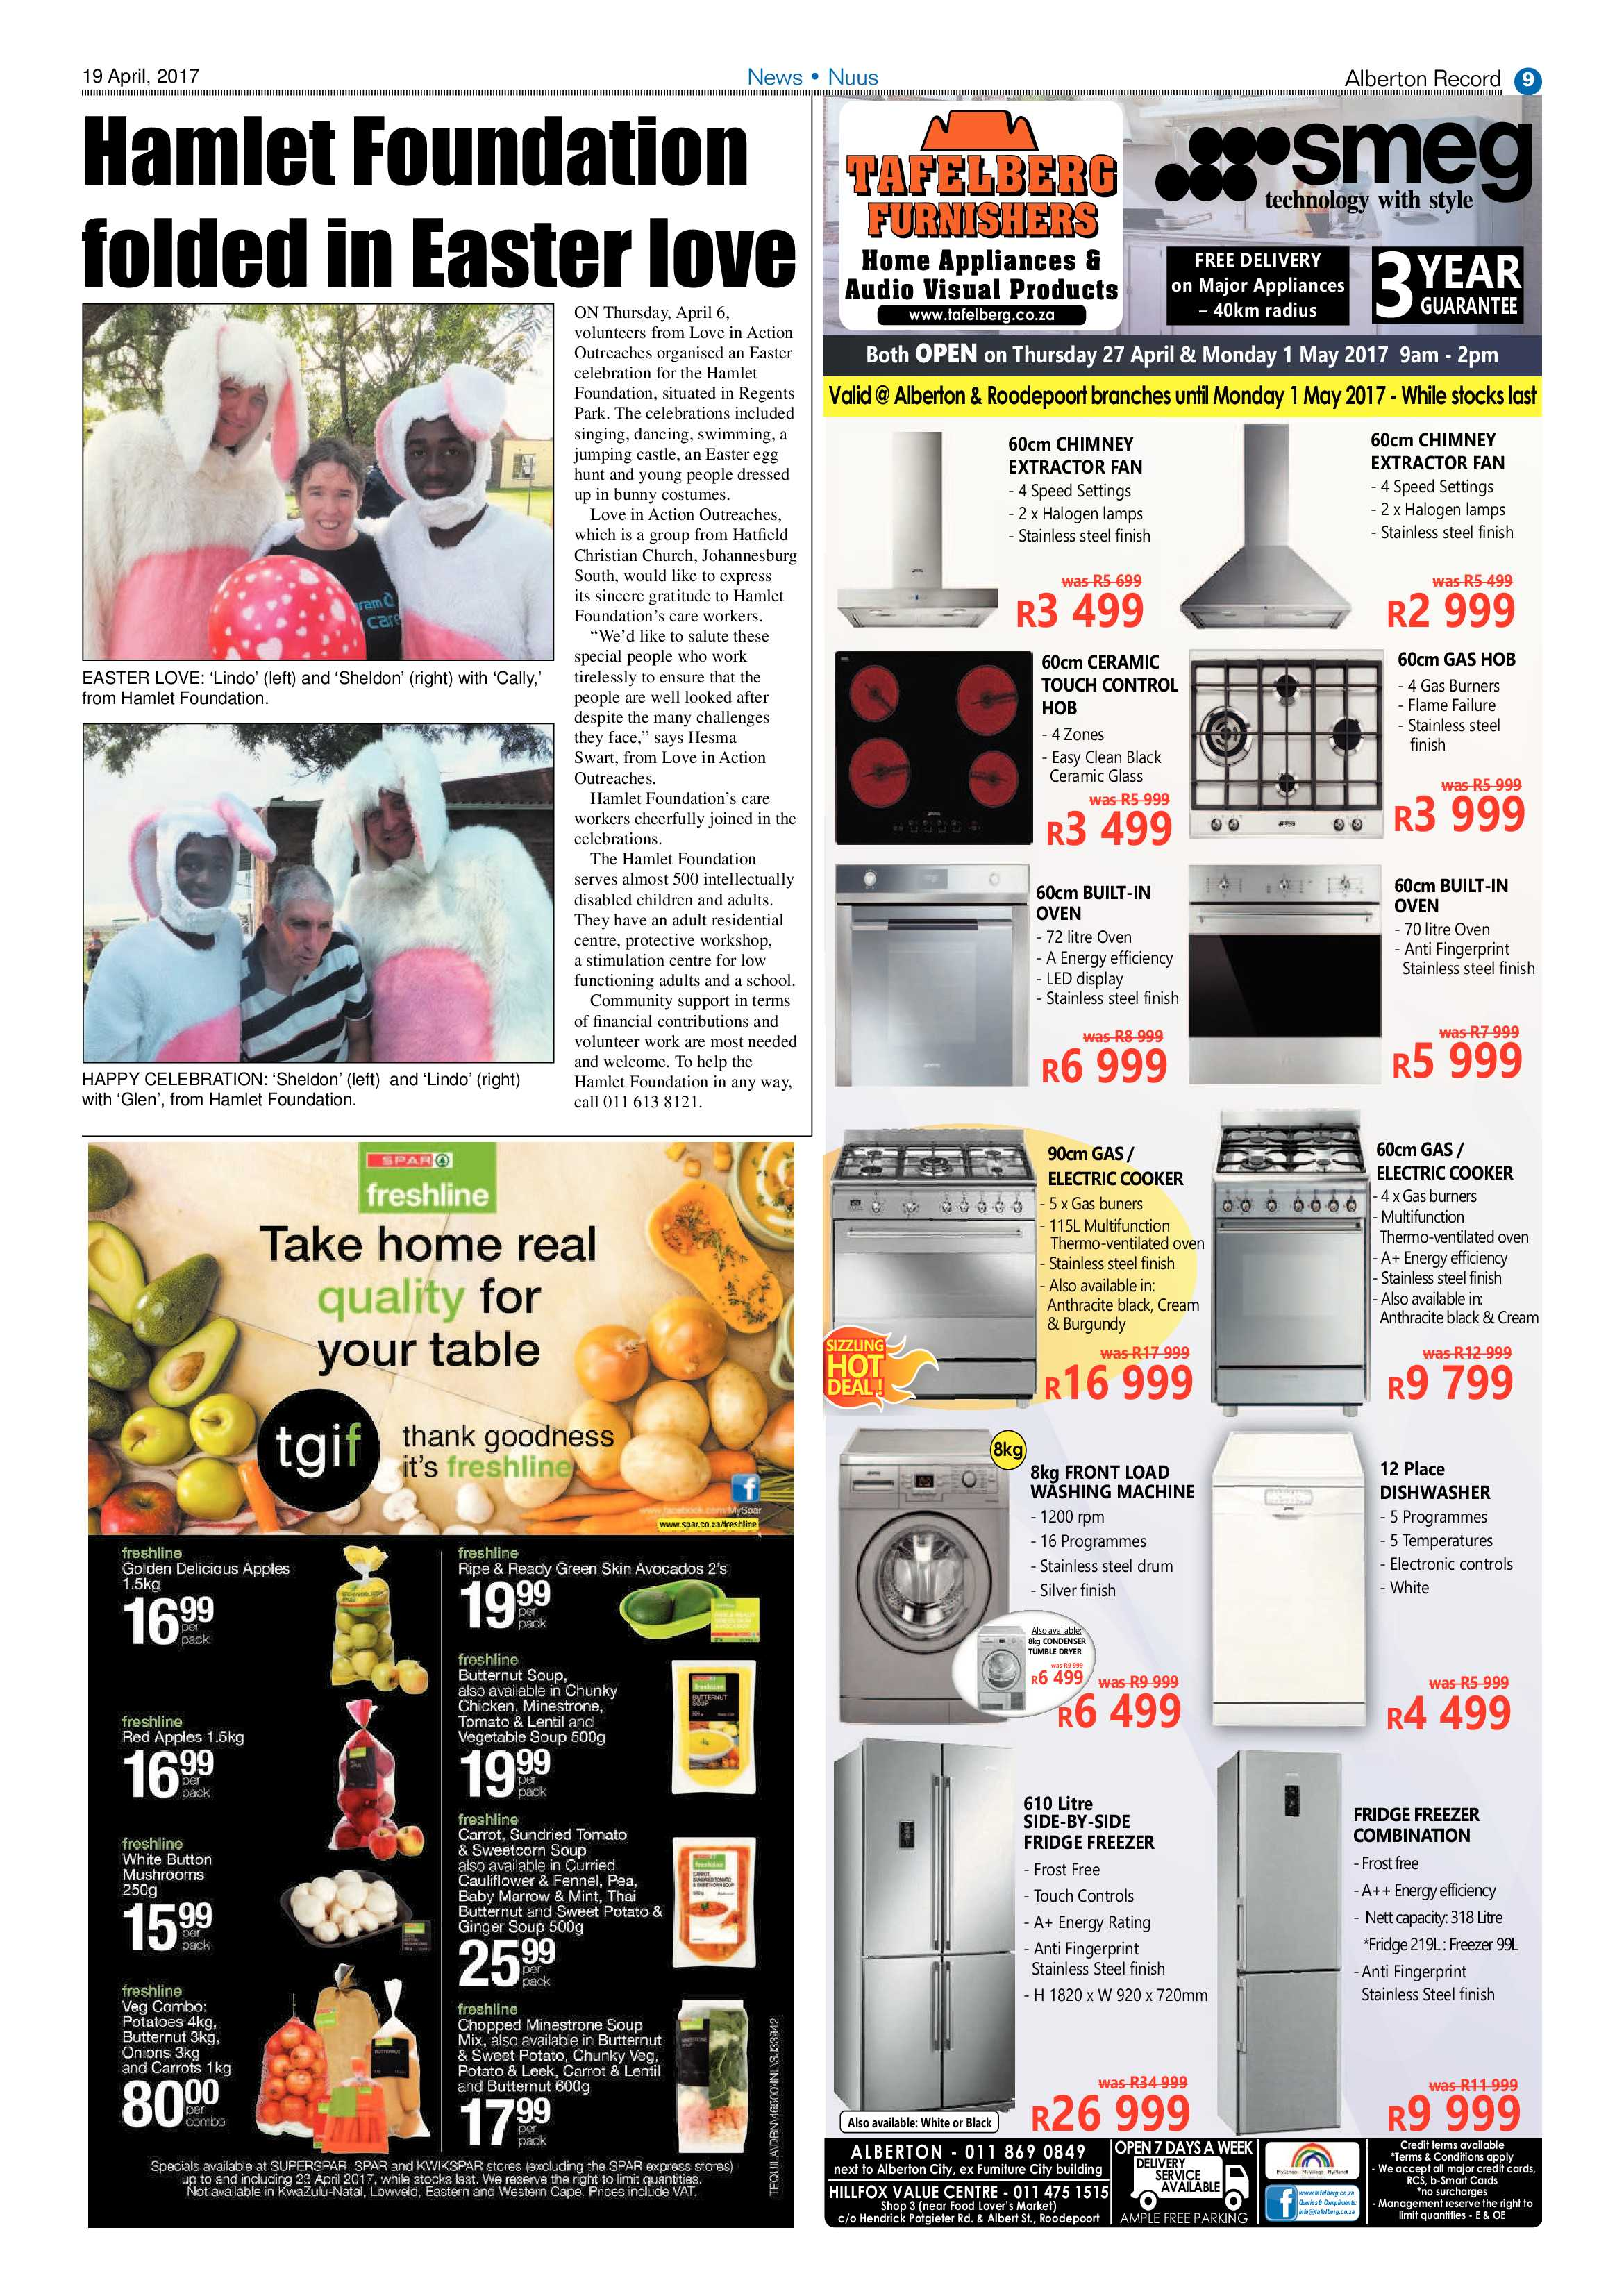 alberton-record-19-april-2017-epapers-page-9